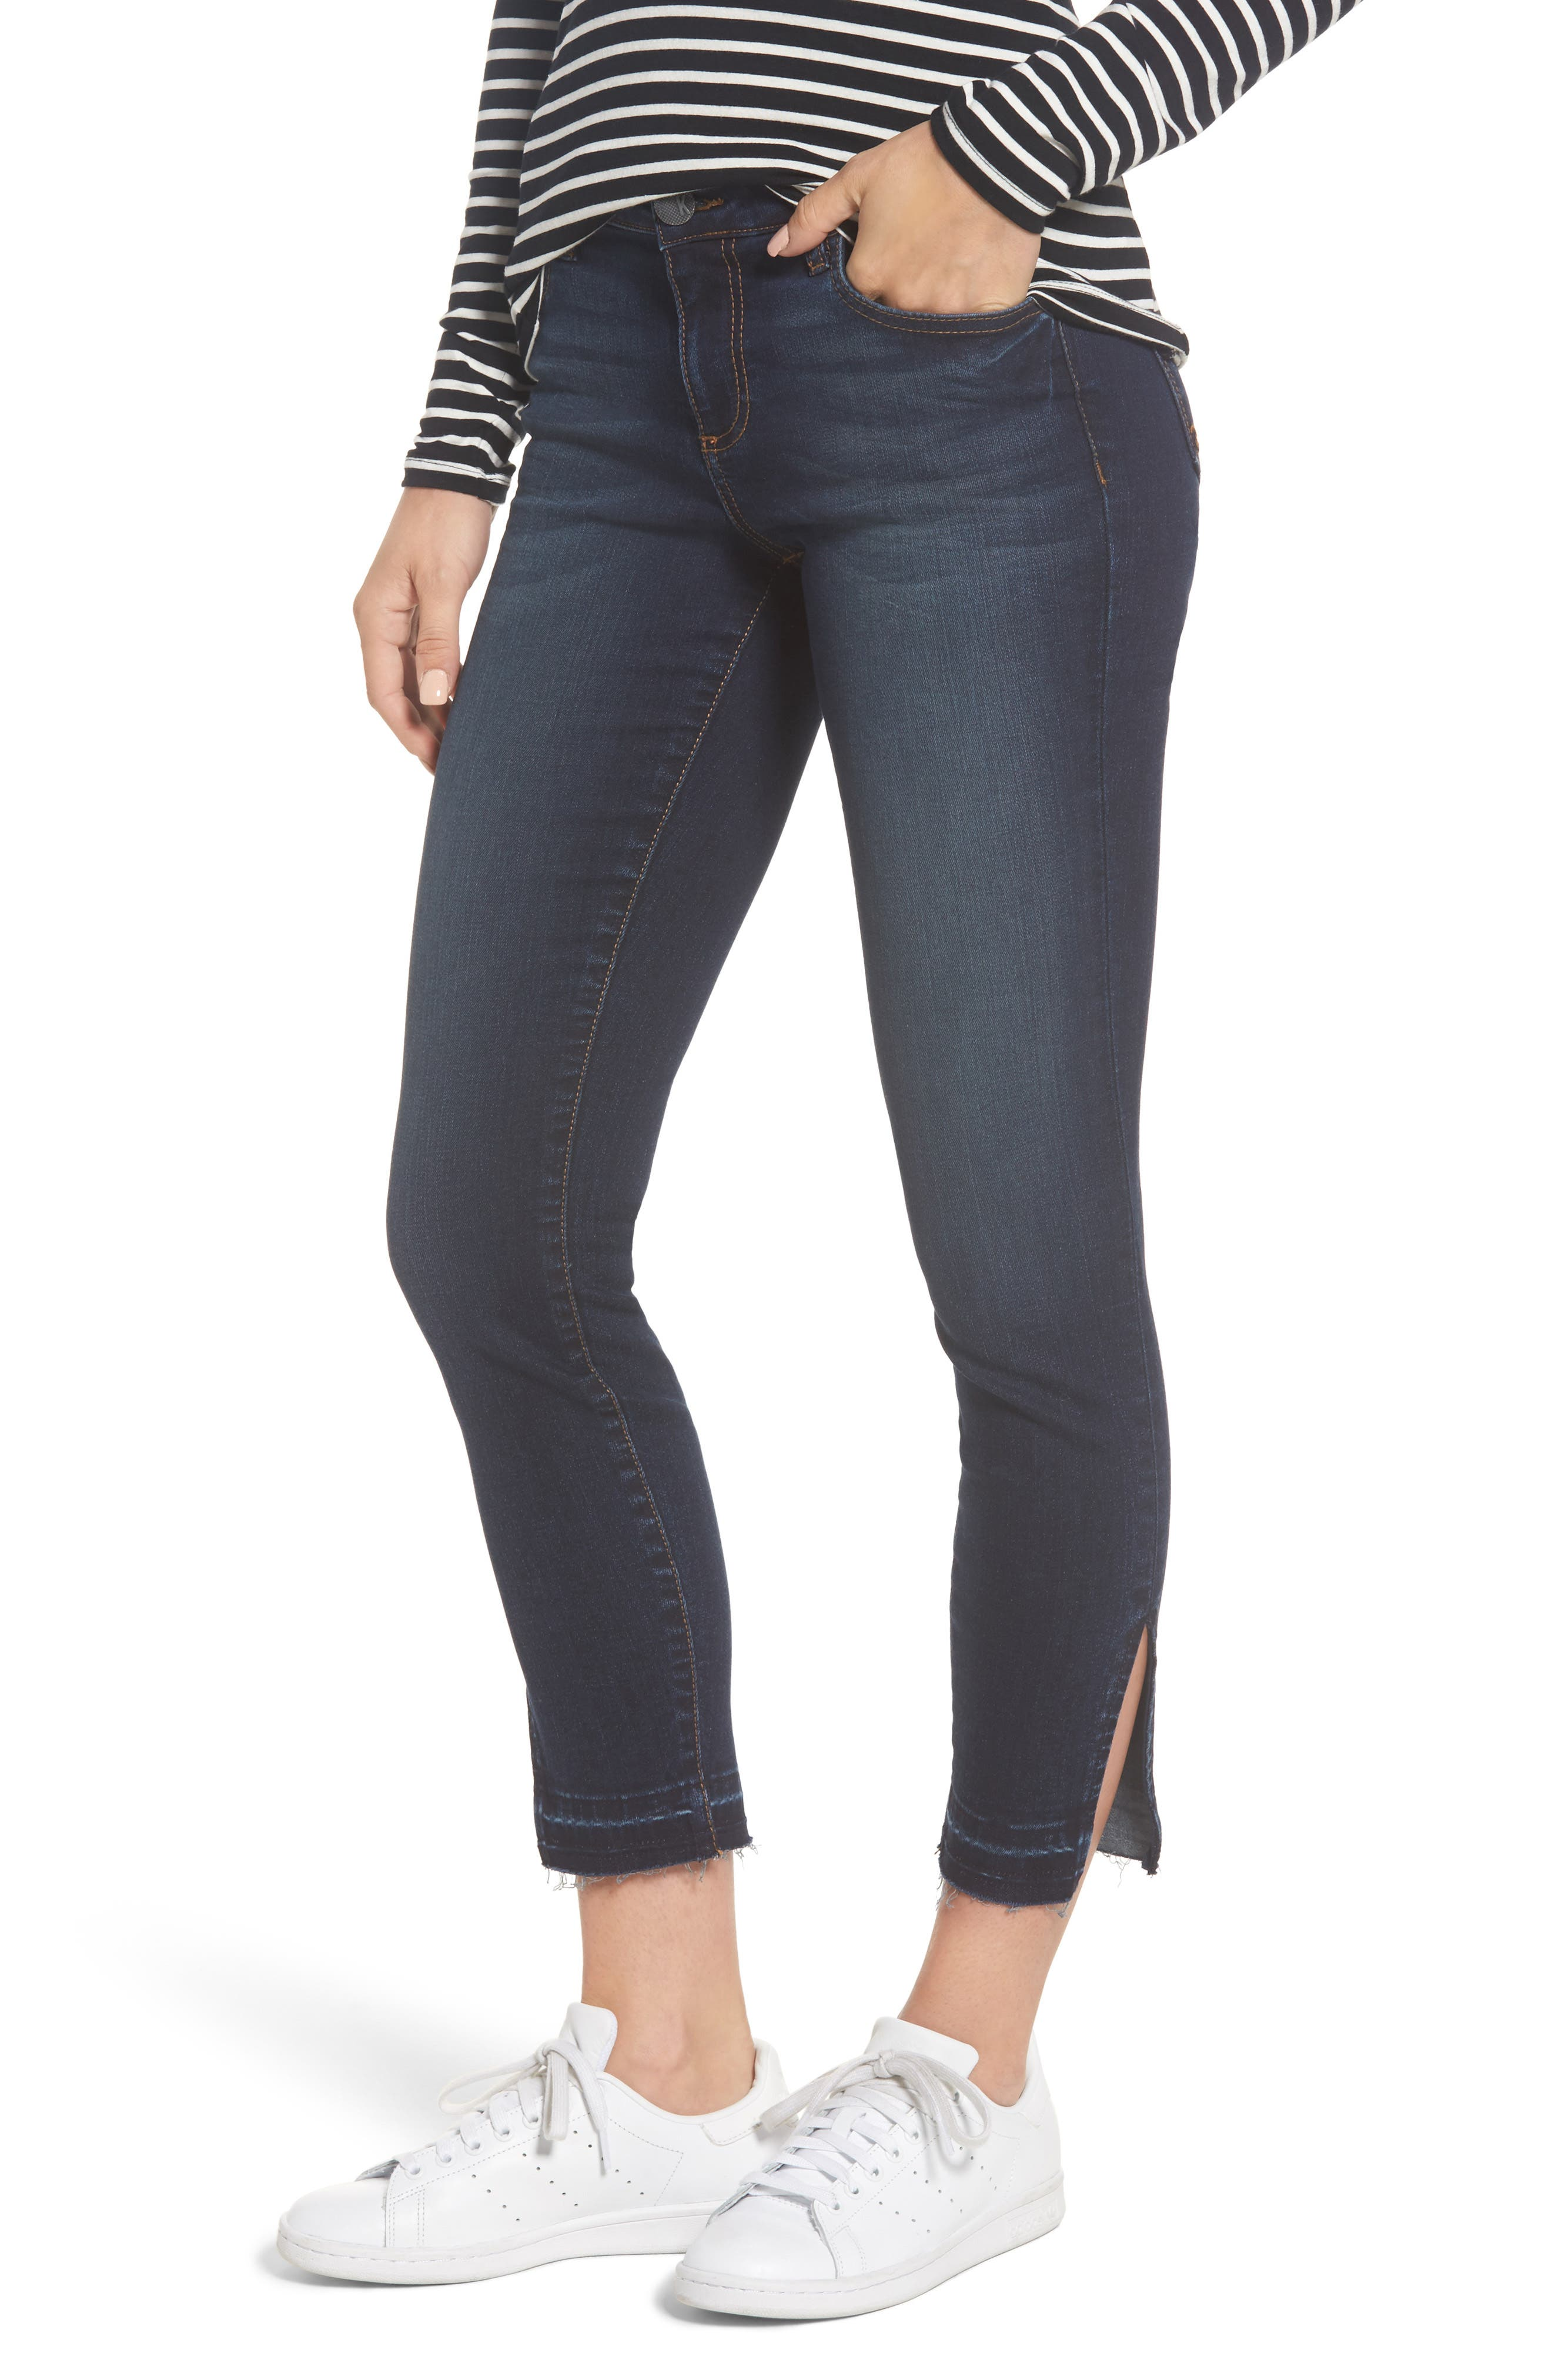 Connie Release Hem Ankle Skinny Jeans,                         Main,                         color, 431